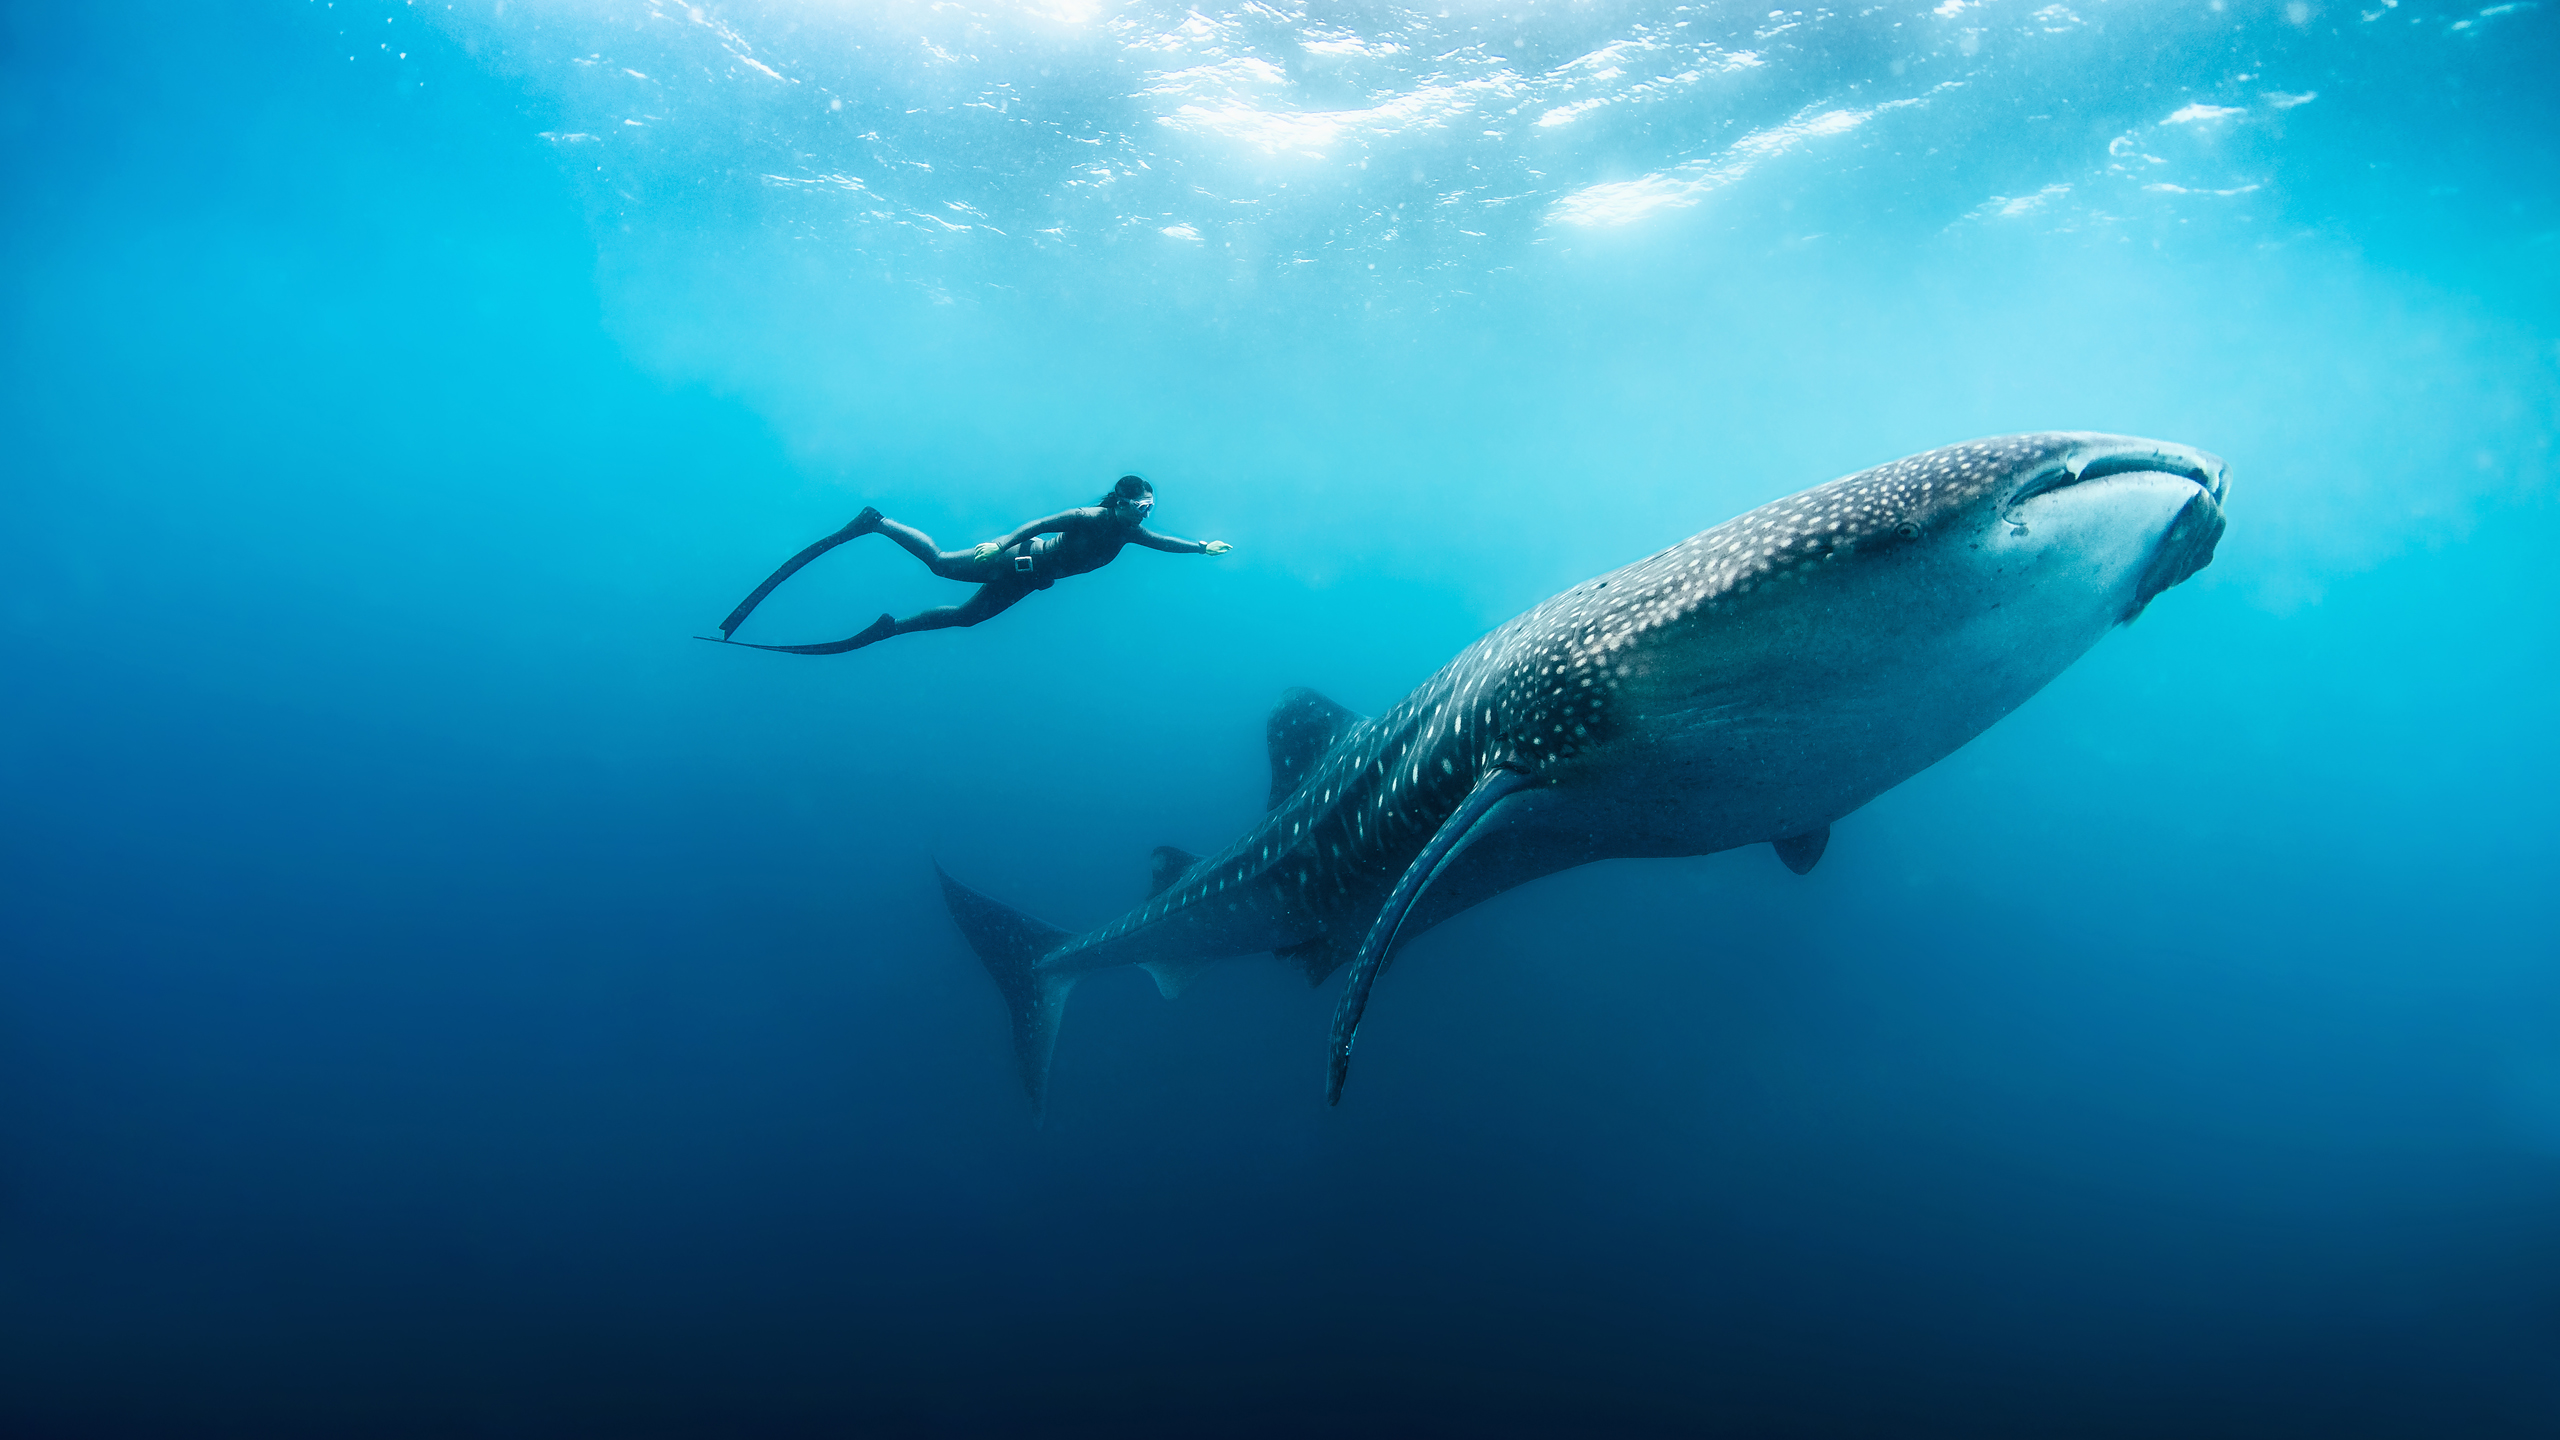 A diver swimming next to a whale shark